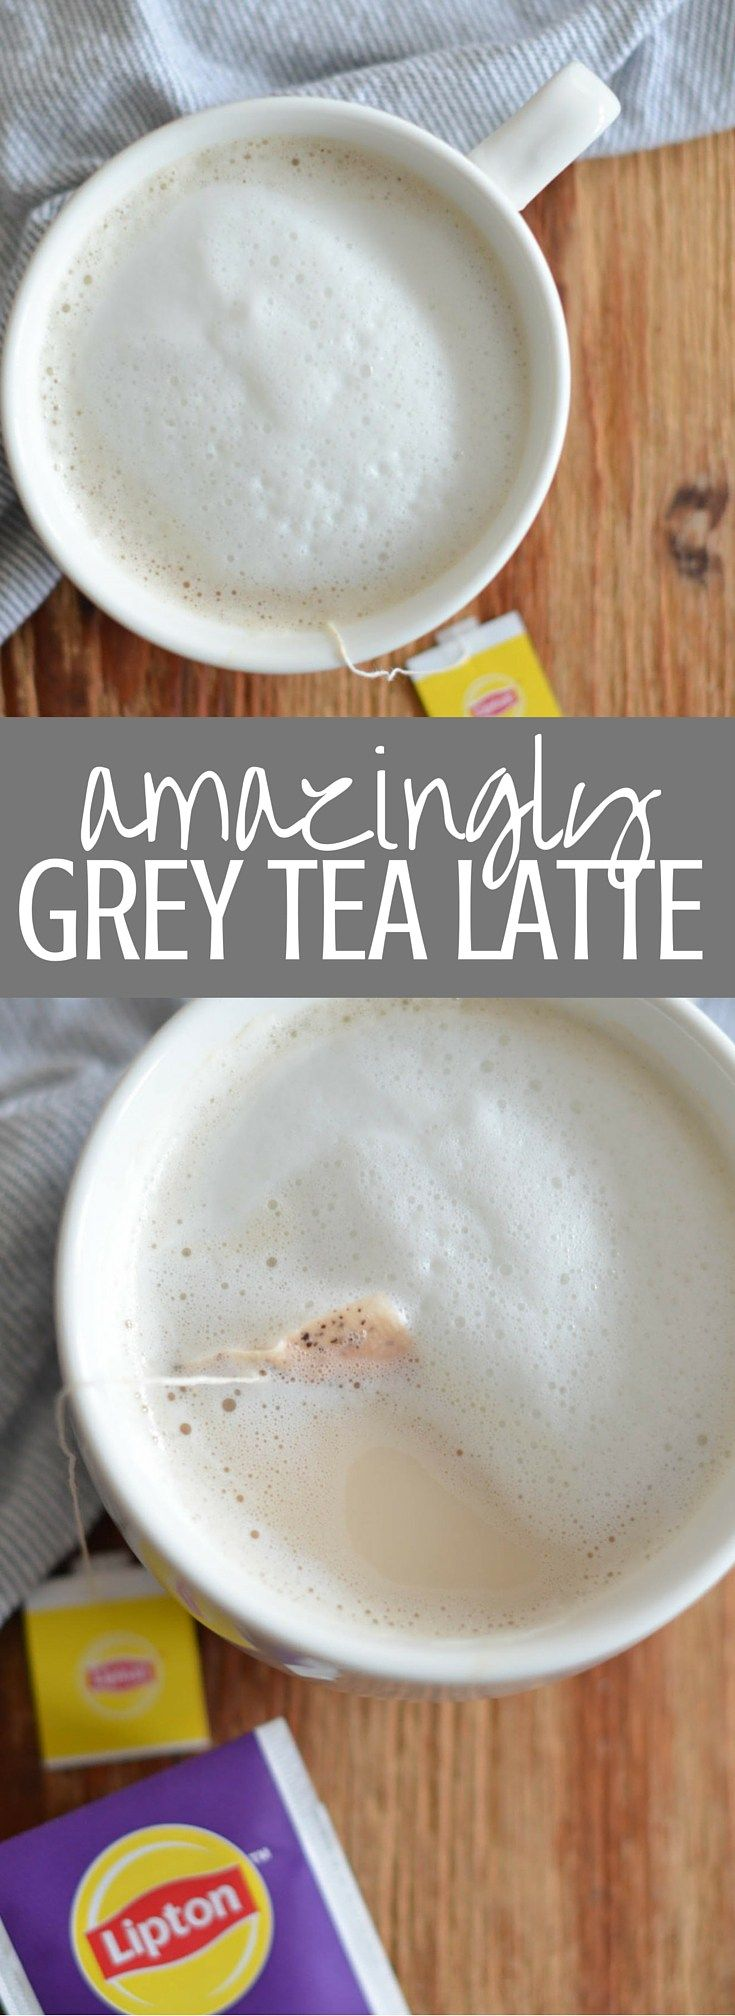 Amazingly Grey Tea Latte | My favorite way to get cozy on a winter afternoon! Lipton's Amazingly Grey Tea is blended with foamy milk and sweetened with a drop of honey for the perfect make it at home Grey Tea Latte. Pin for later and clickthrough for the full recipe! #LiptonTeaTime #Sponsored